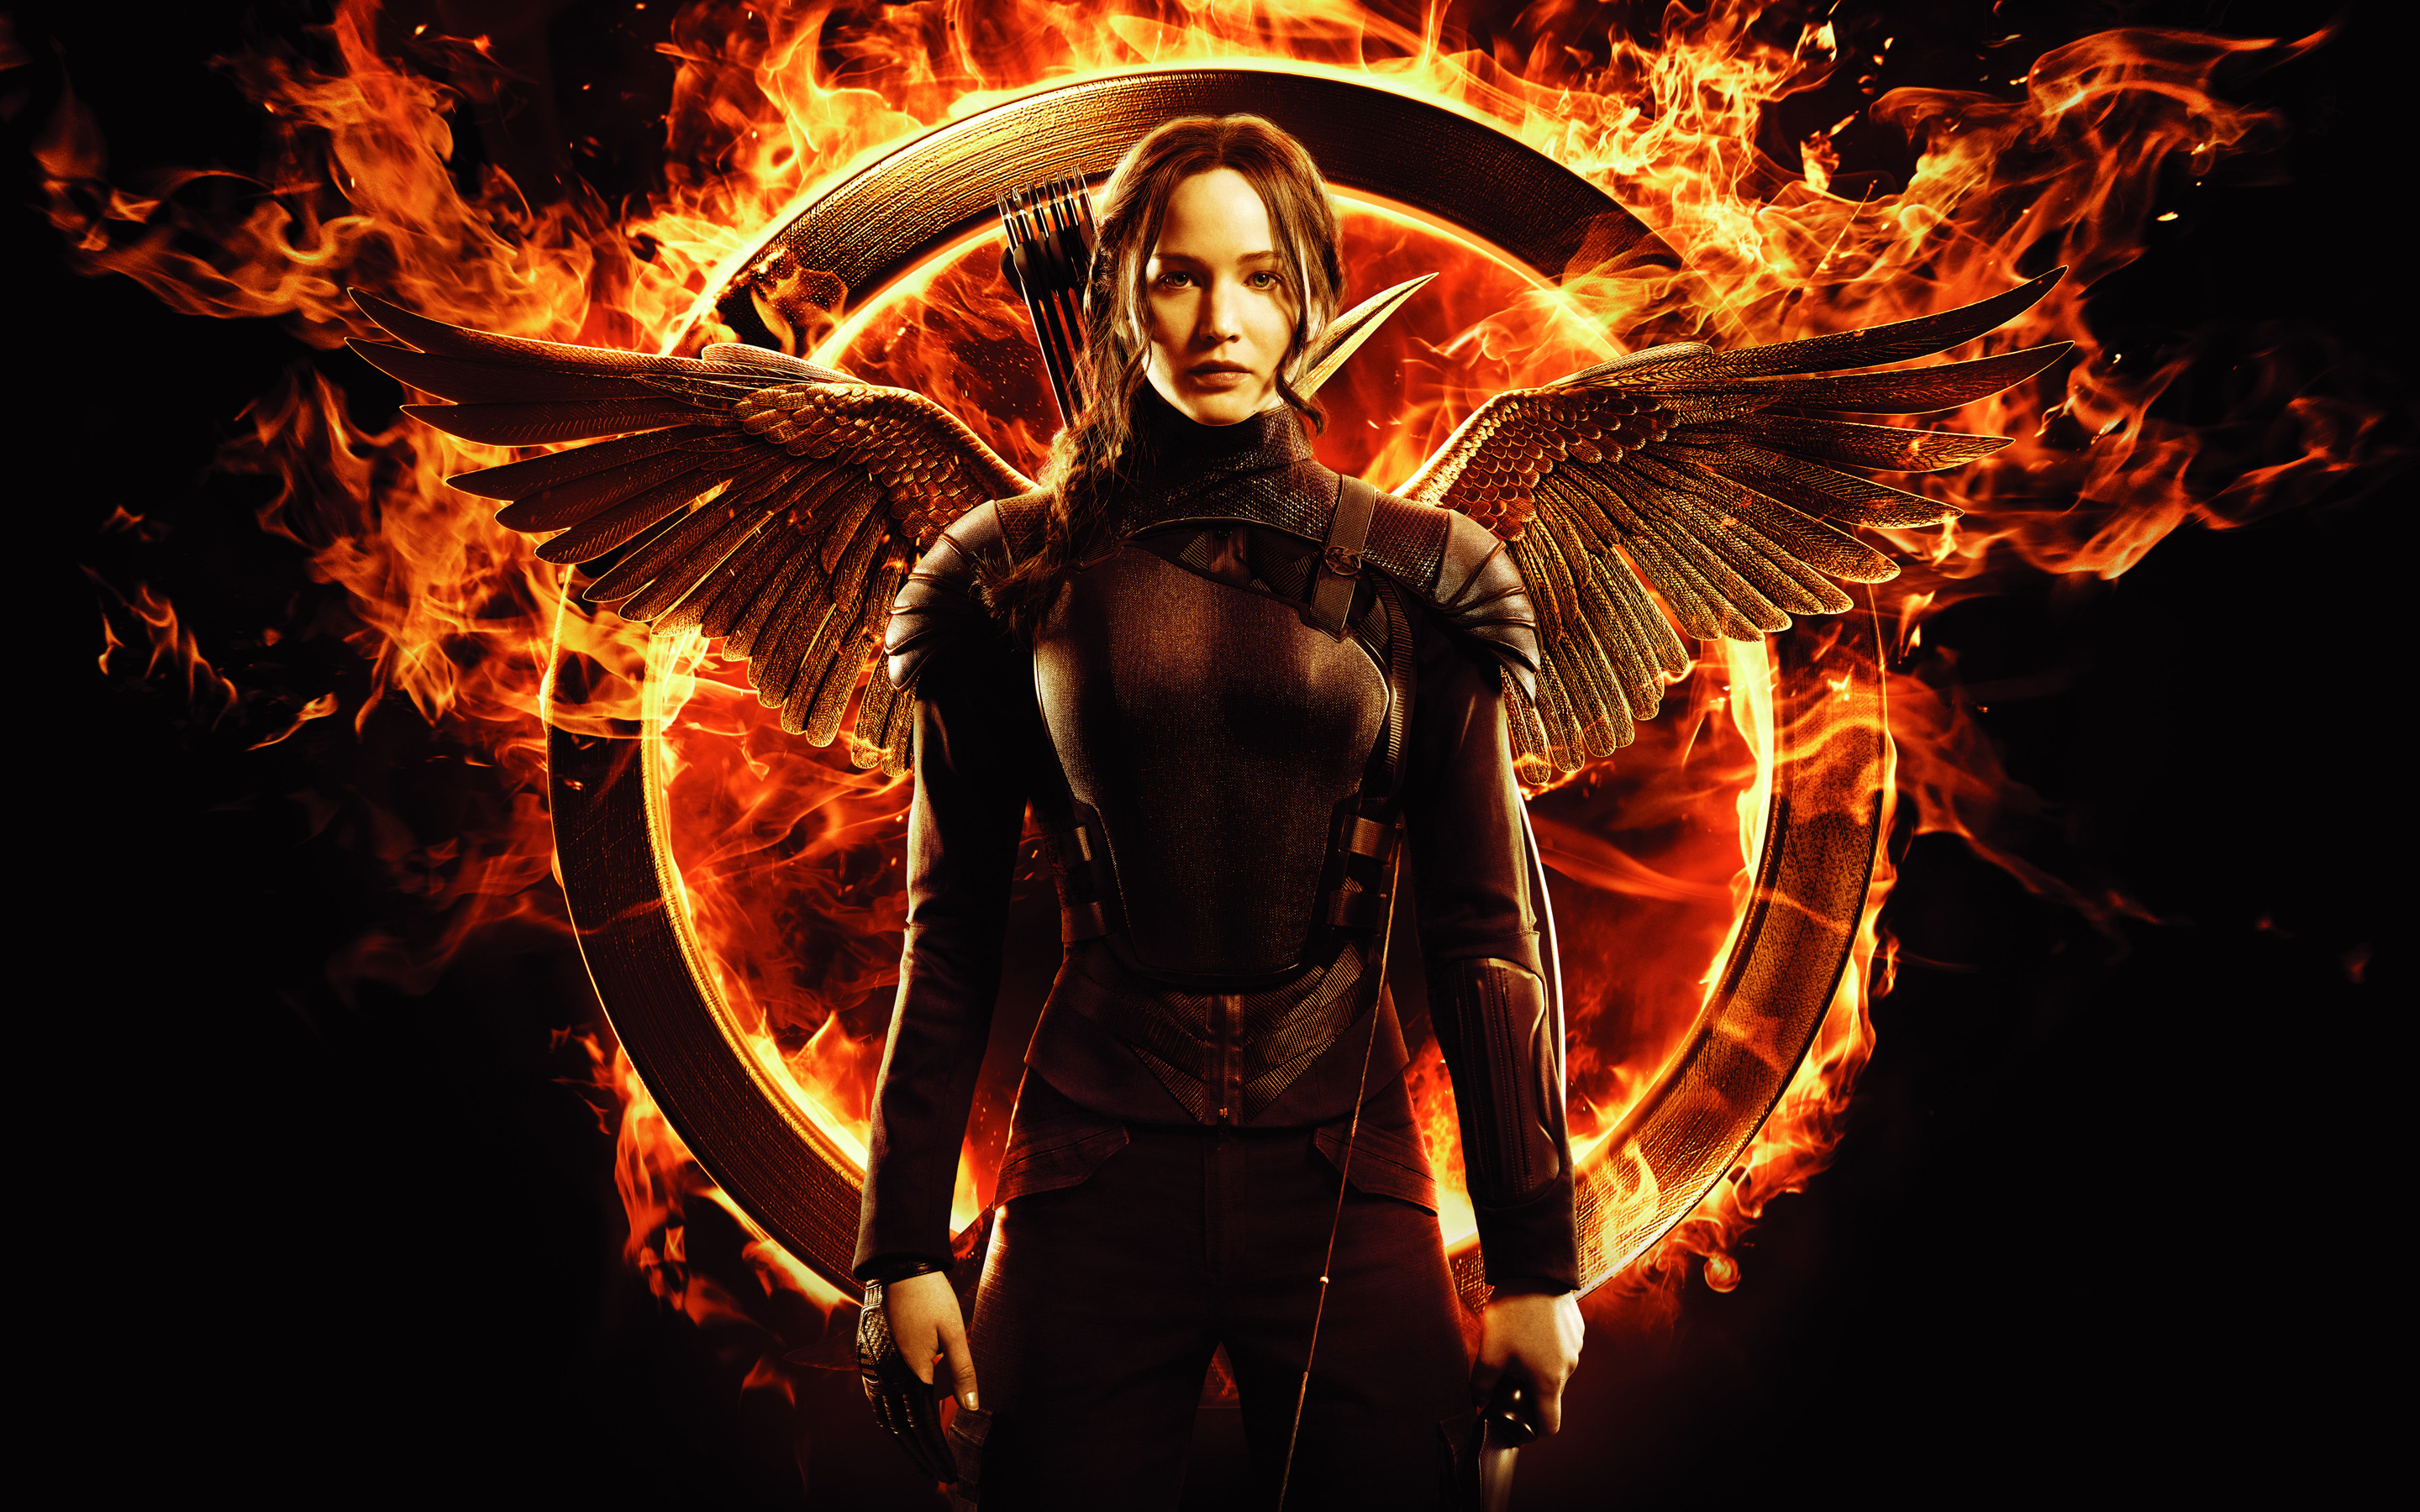 Jennifer Lawrence in Hunger Games Mockingjay 511.07 Kb